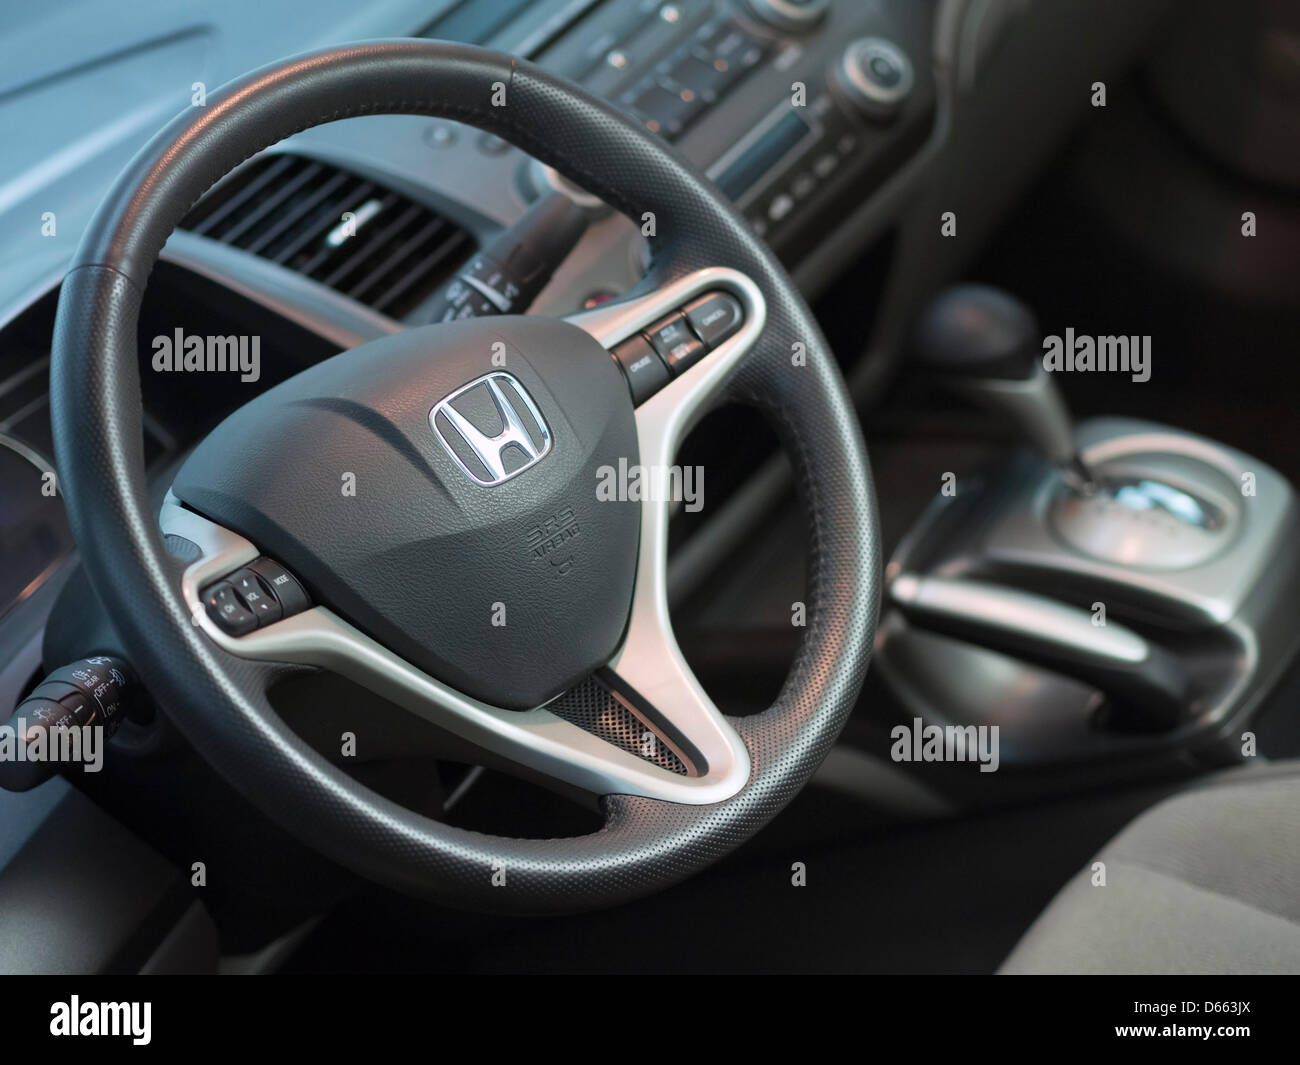 Honda Civic Hybrid Interior With Steering Wheel And Automatic Gearbox Lever    Stock Image